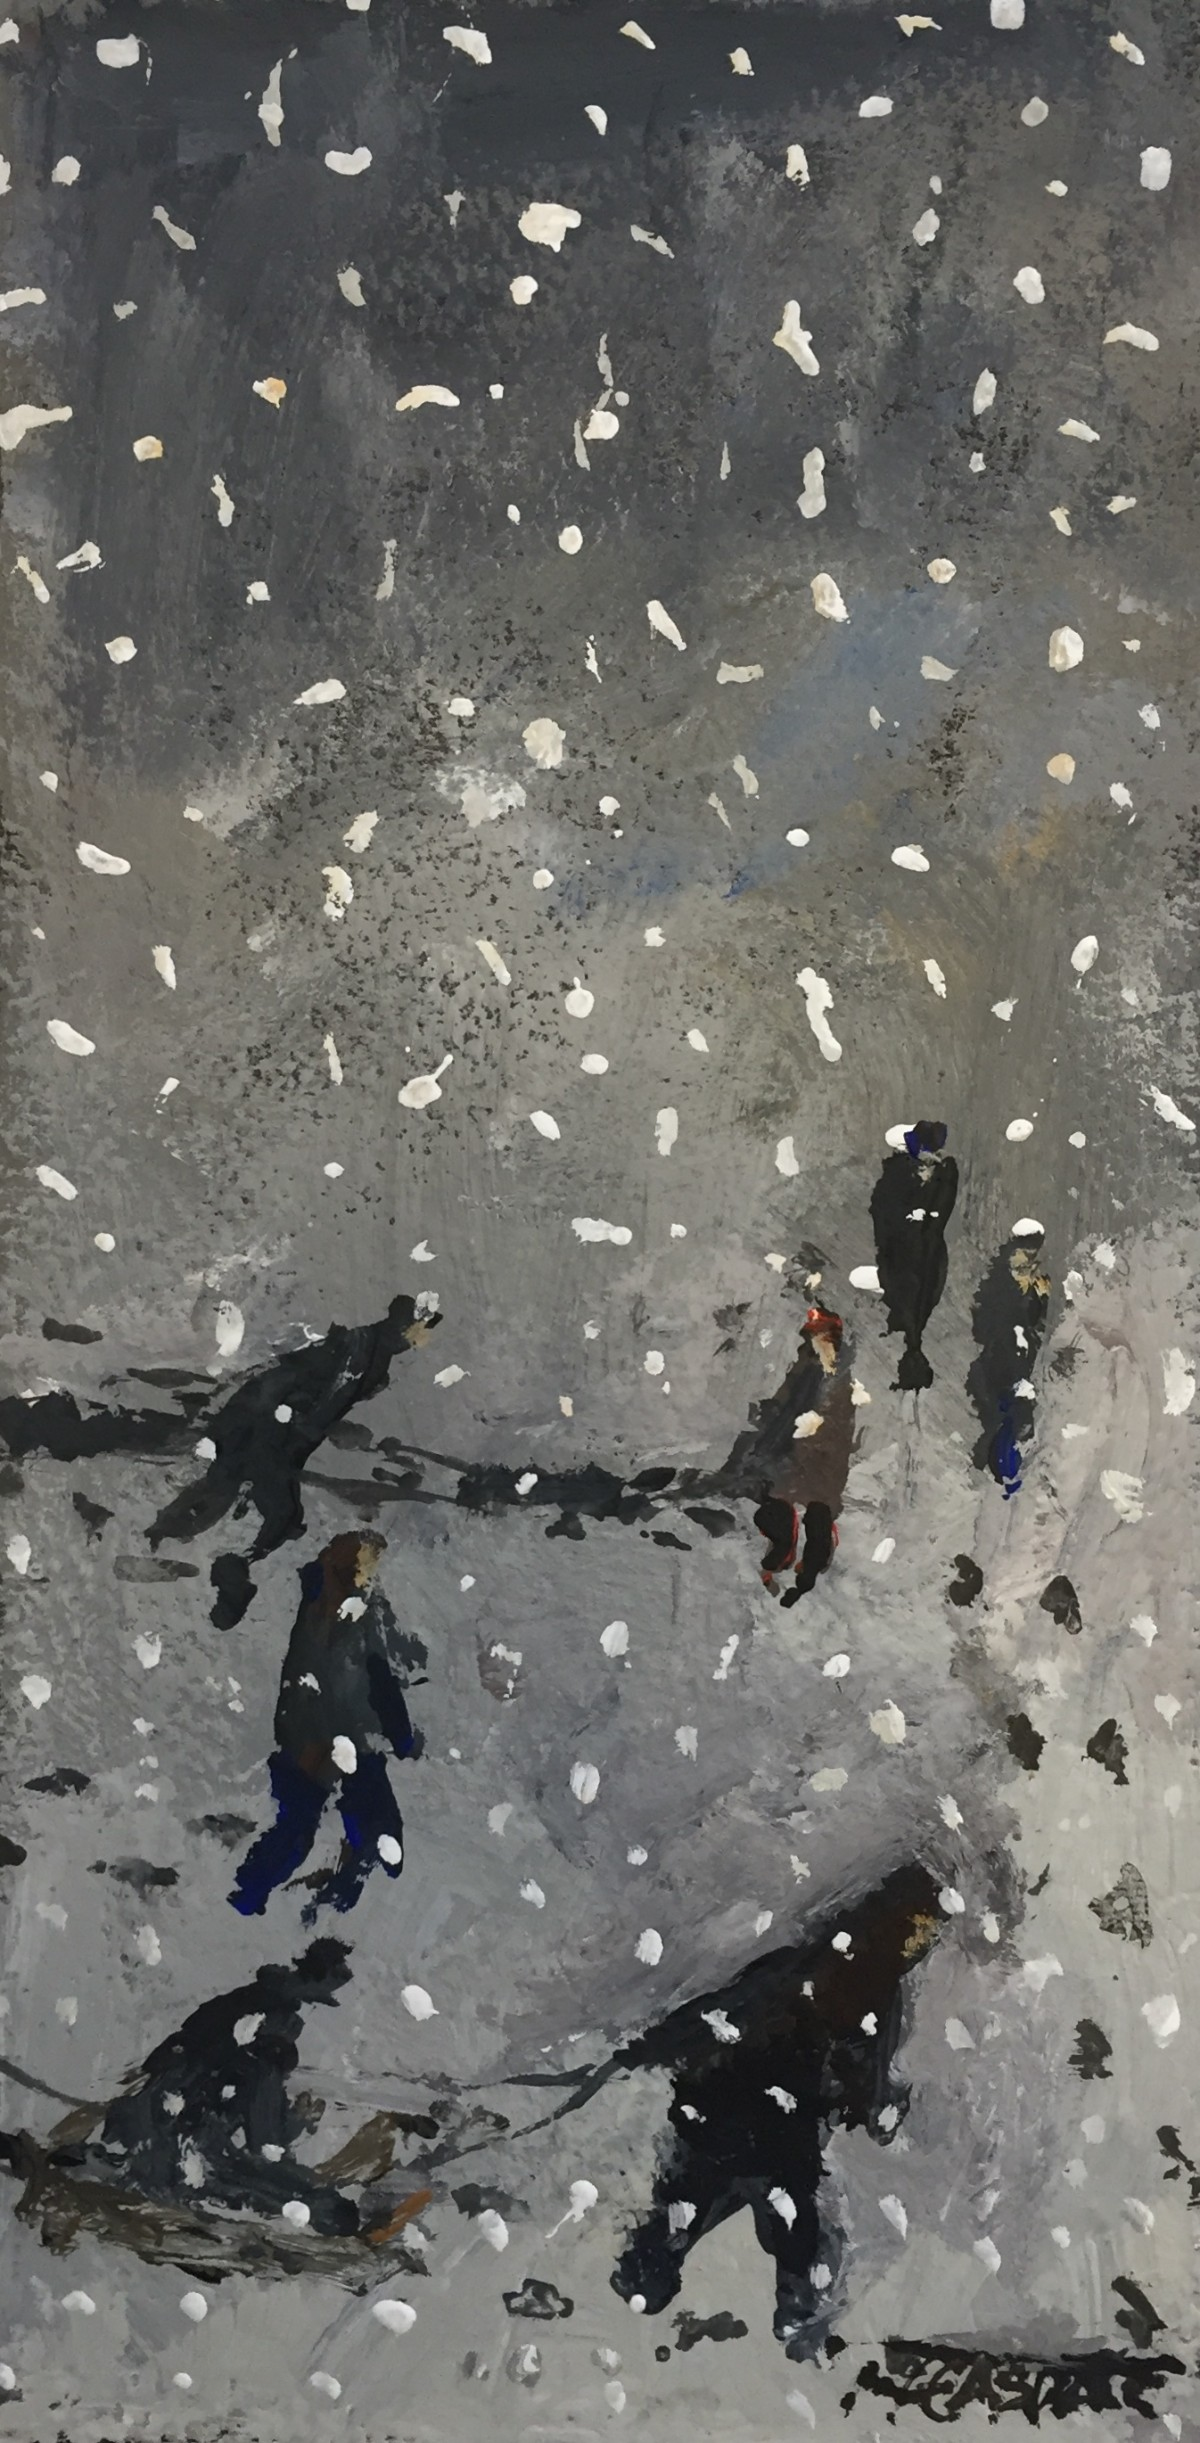 Caught in a Blizzard by Malcolm Teasdale